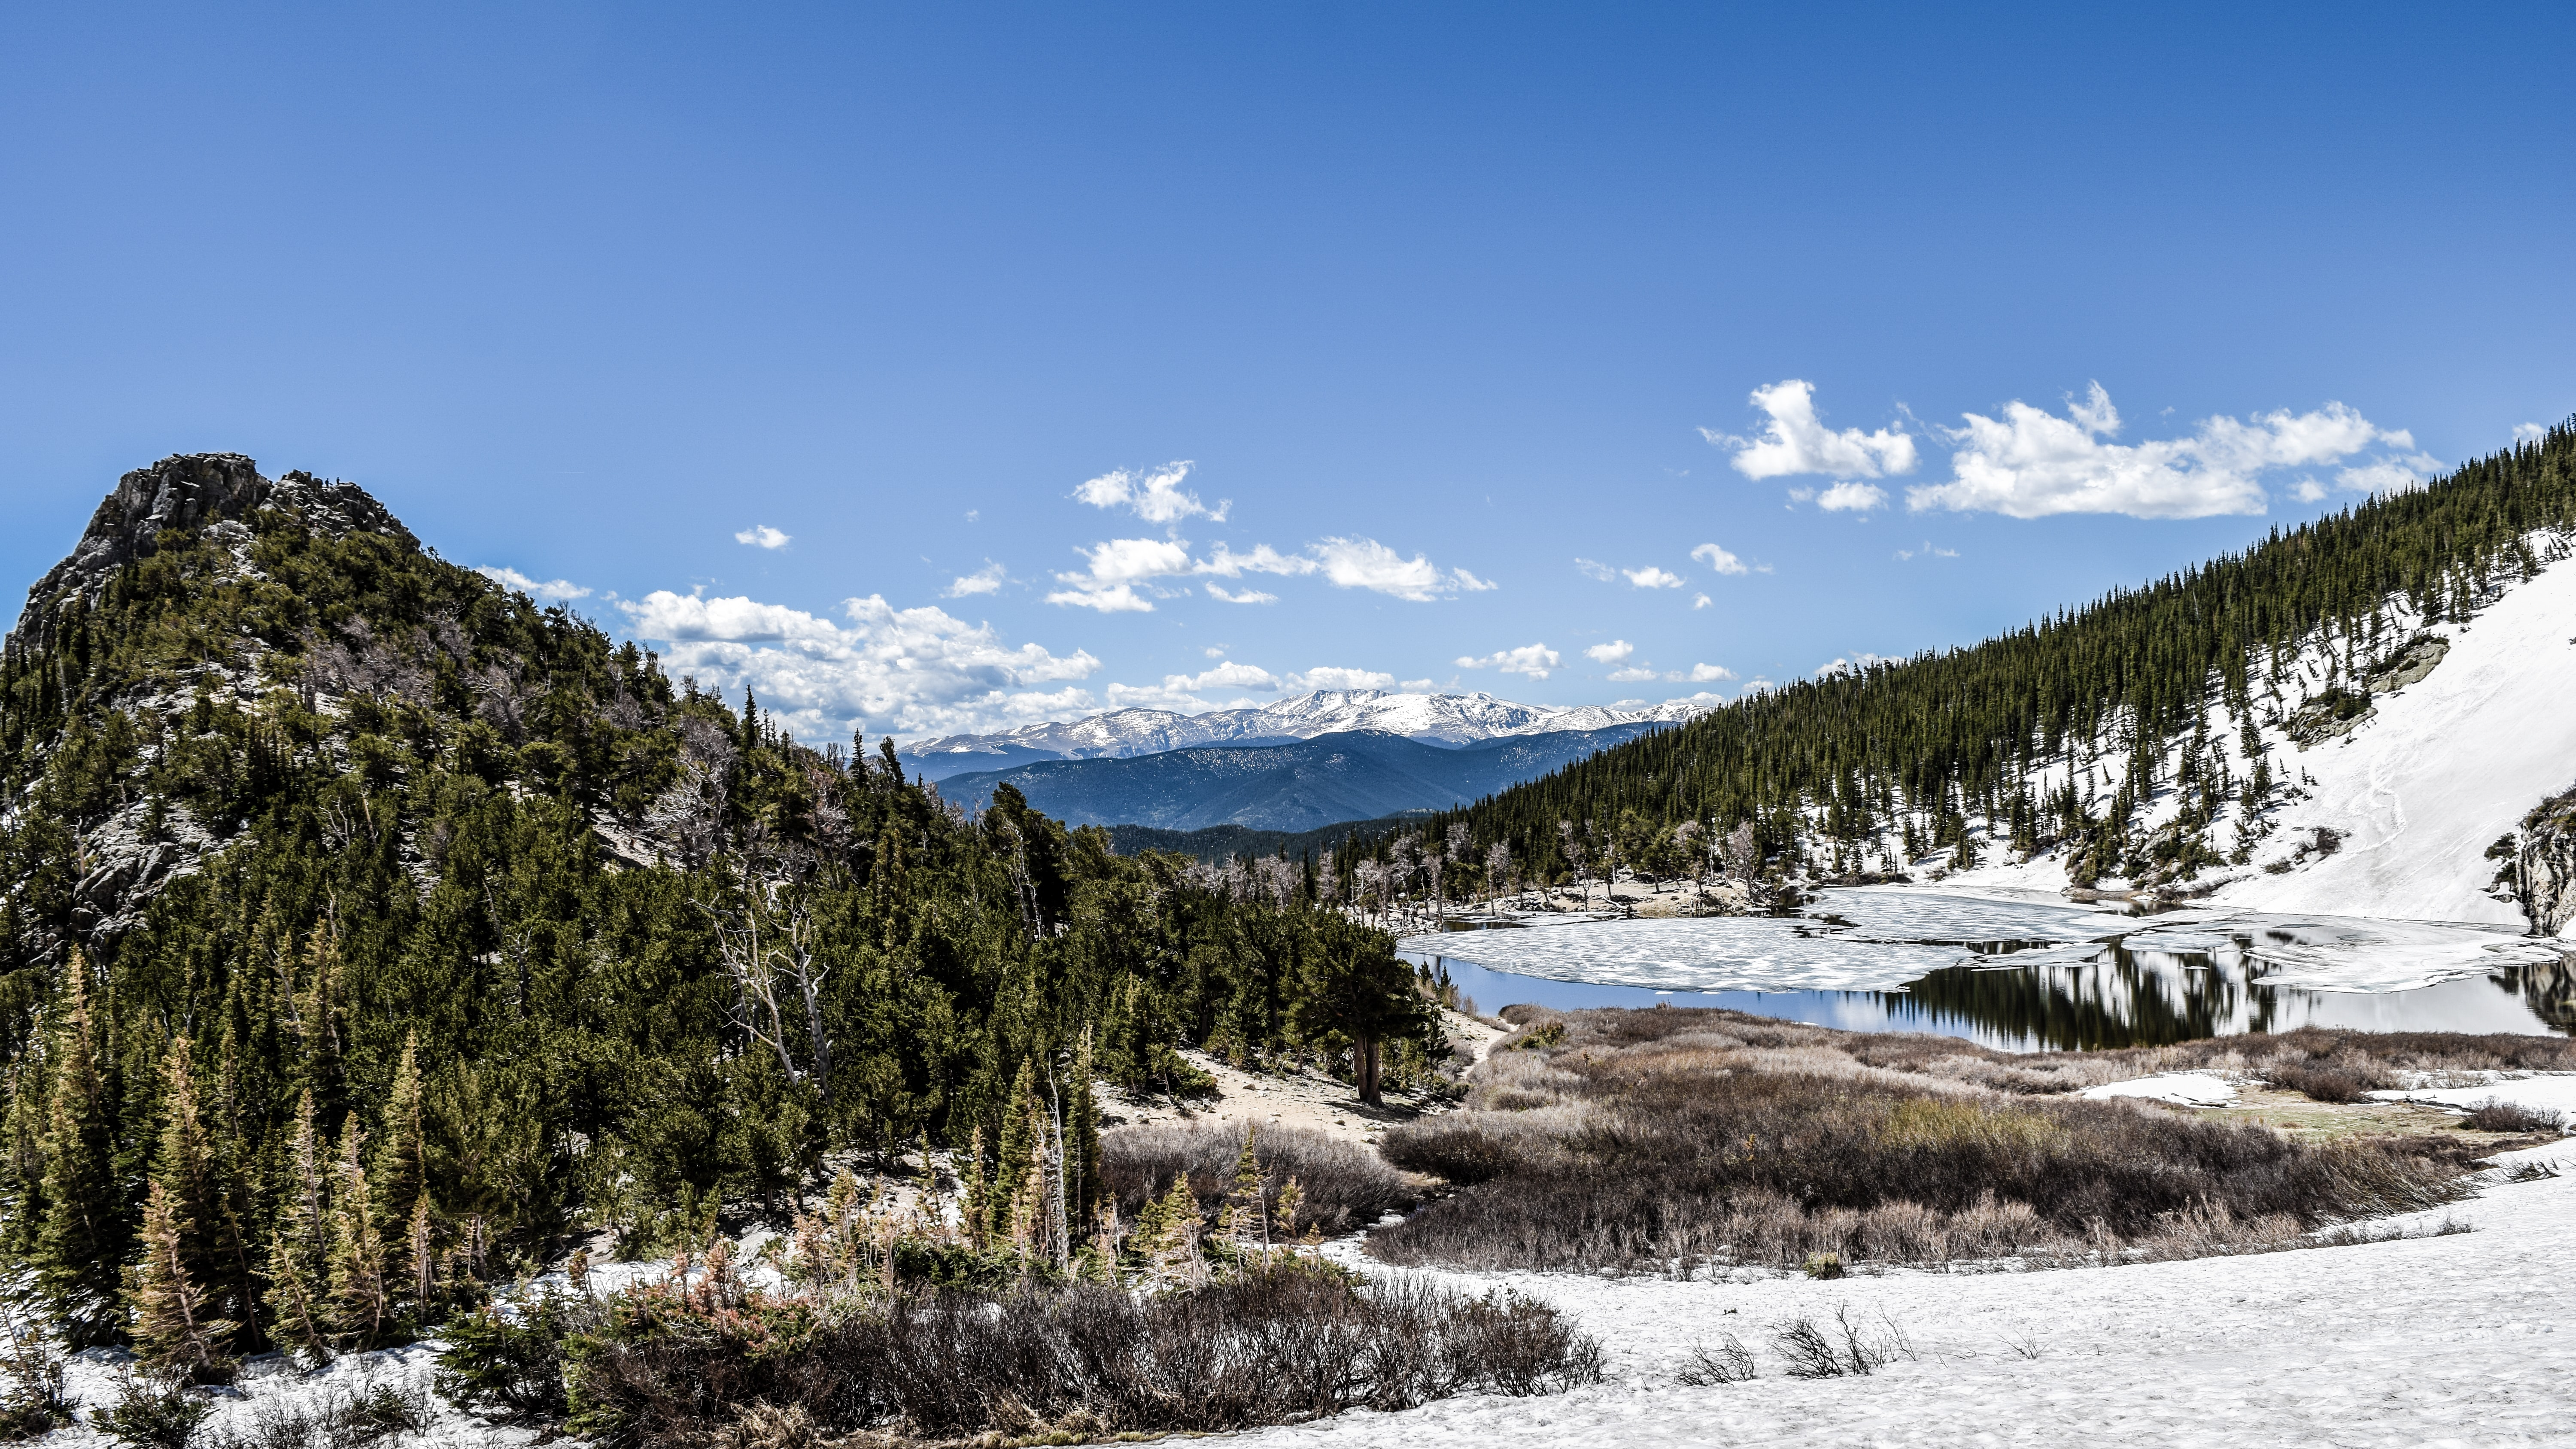 St. Mary's Glacier with its lake, forests and snowy hills